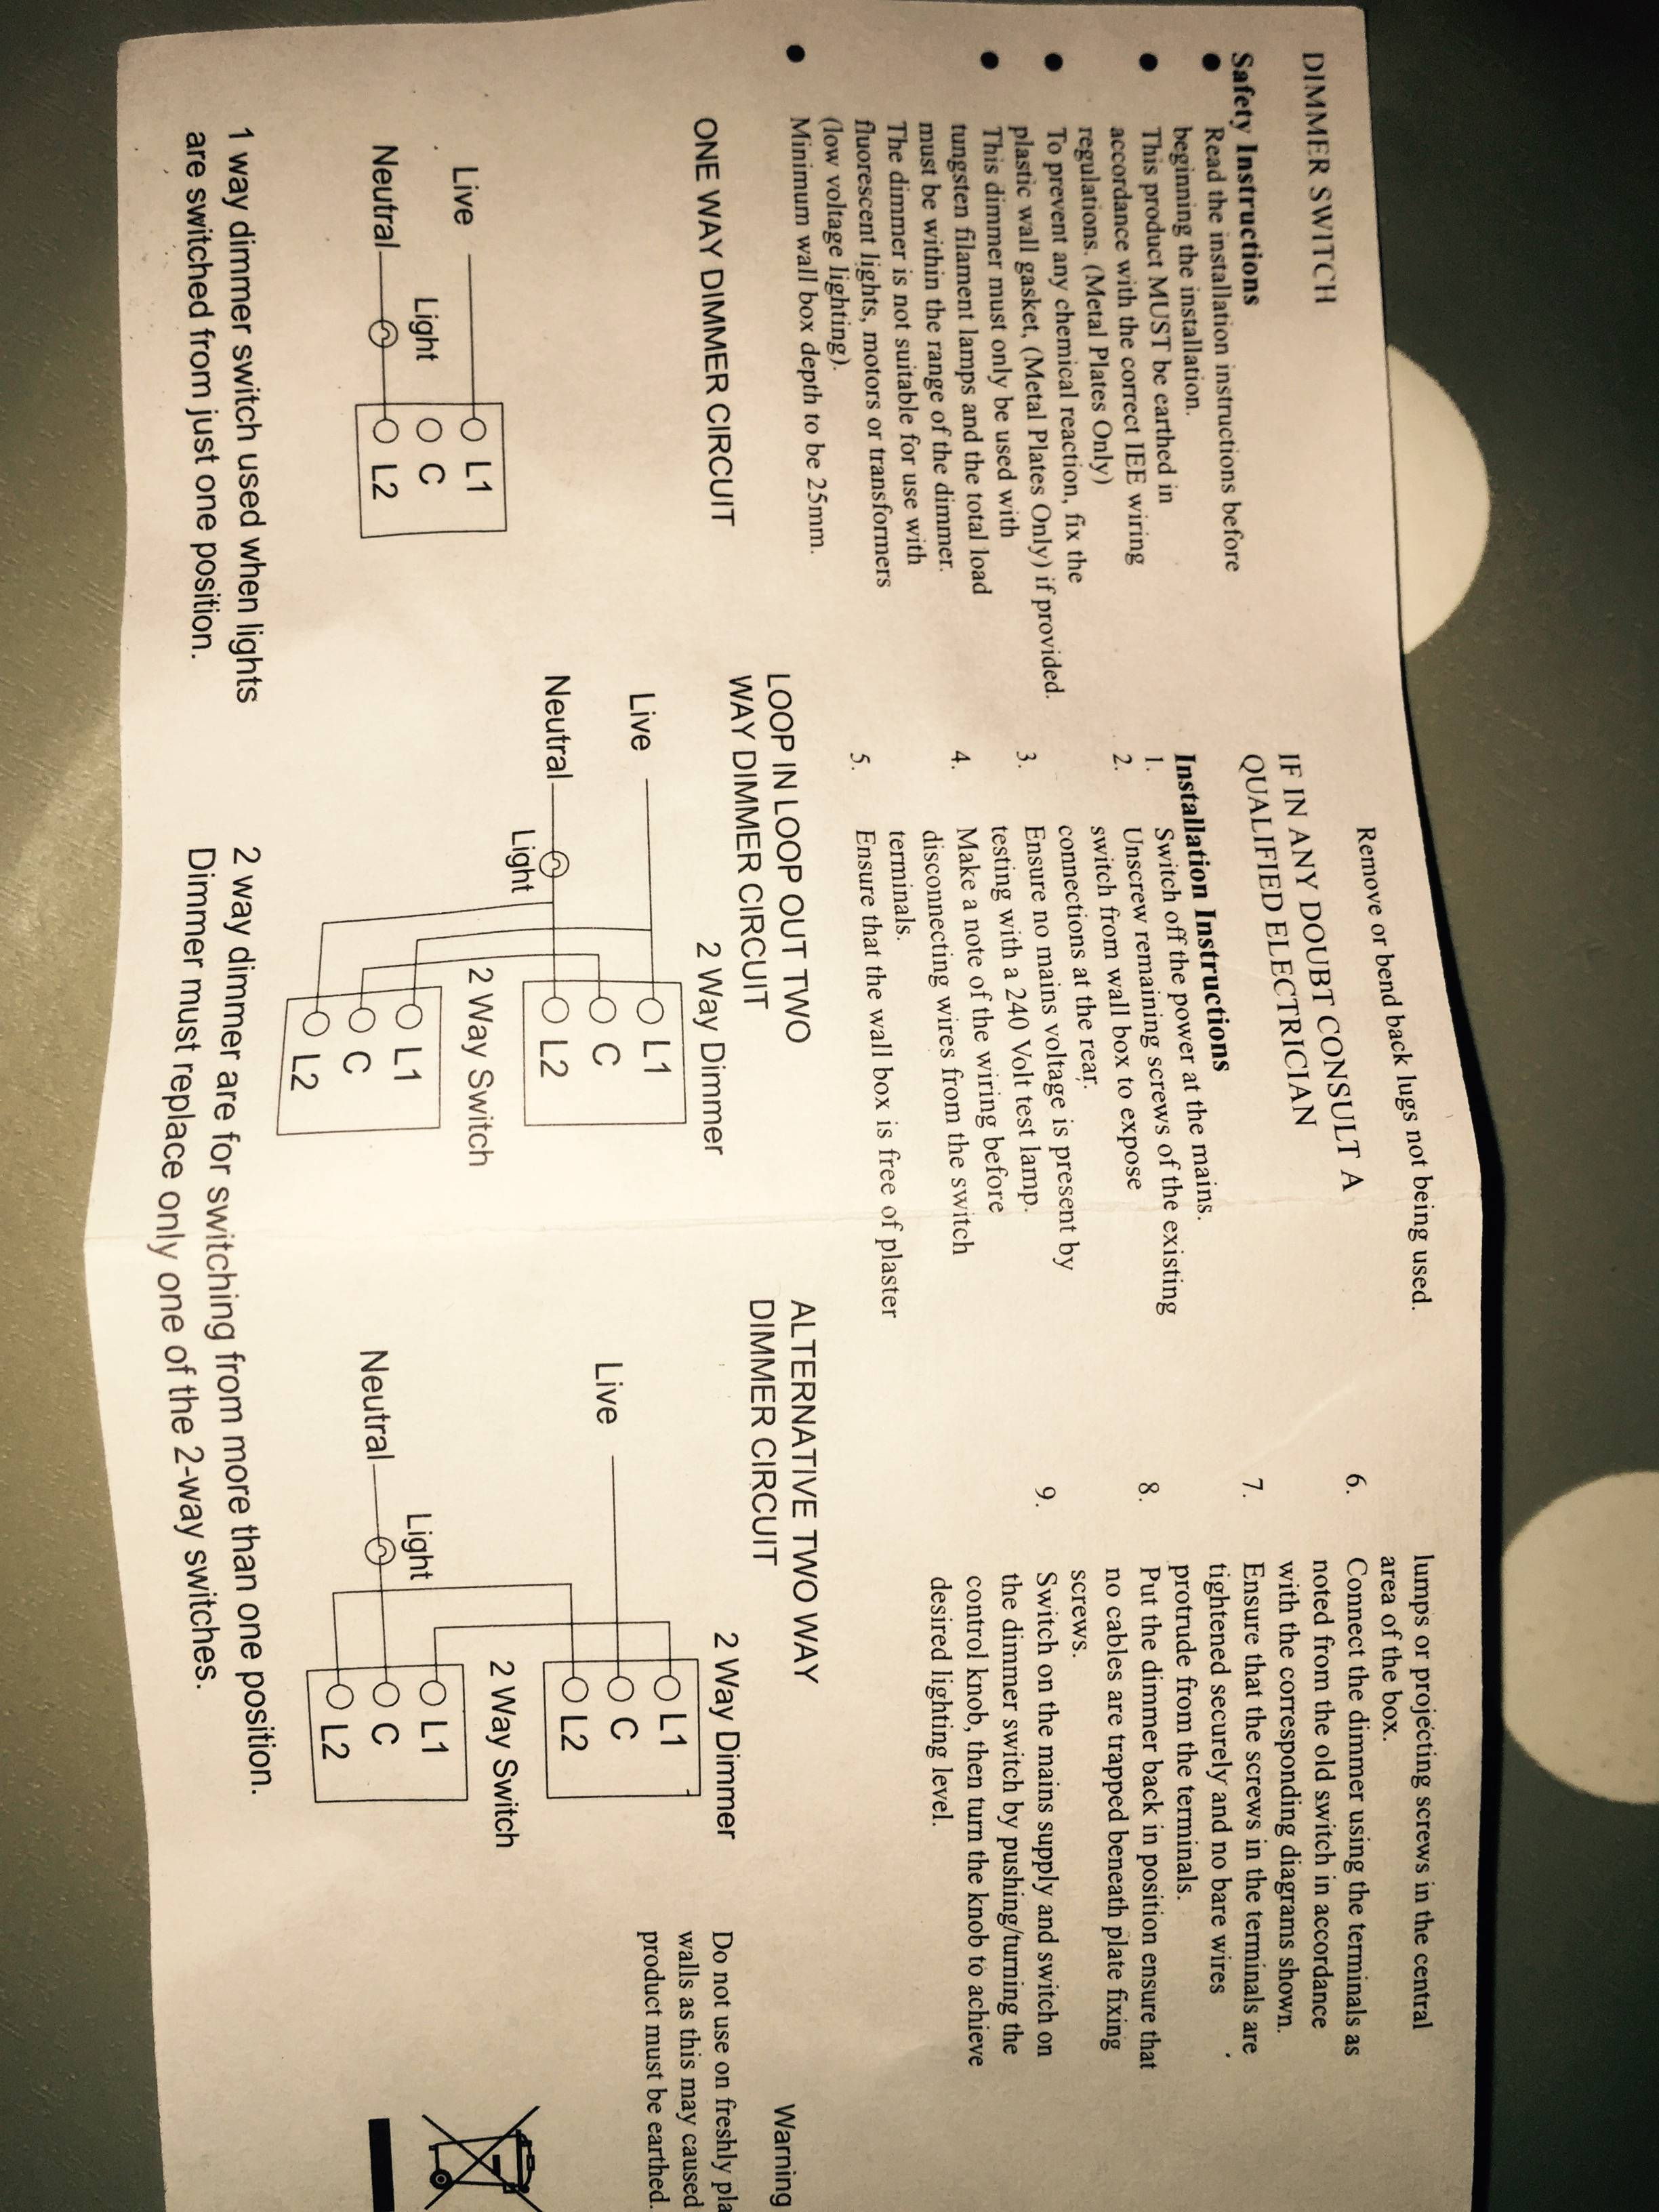 Gang Switch Wiring Diagram Help Wiring 4 Gang Switch Panel 4